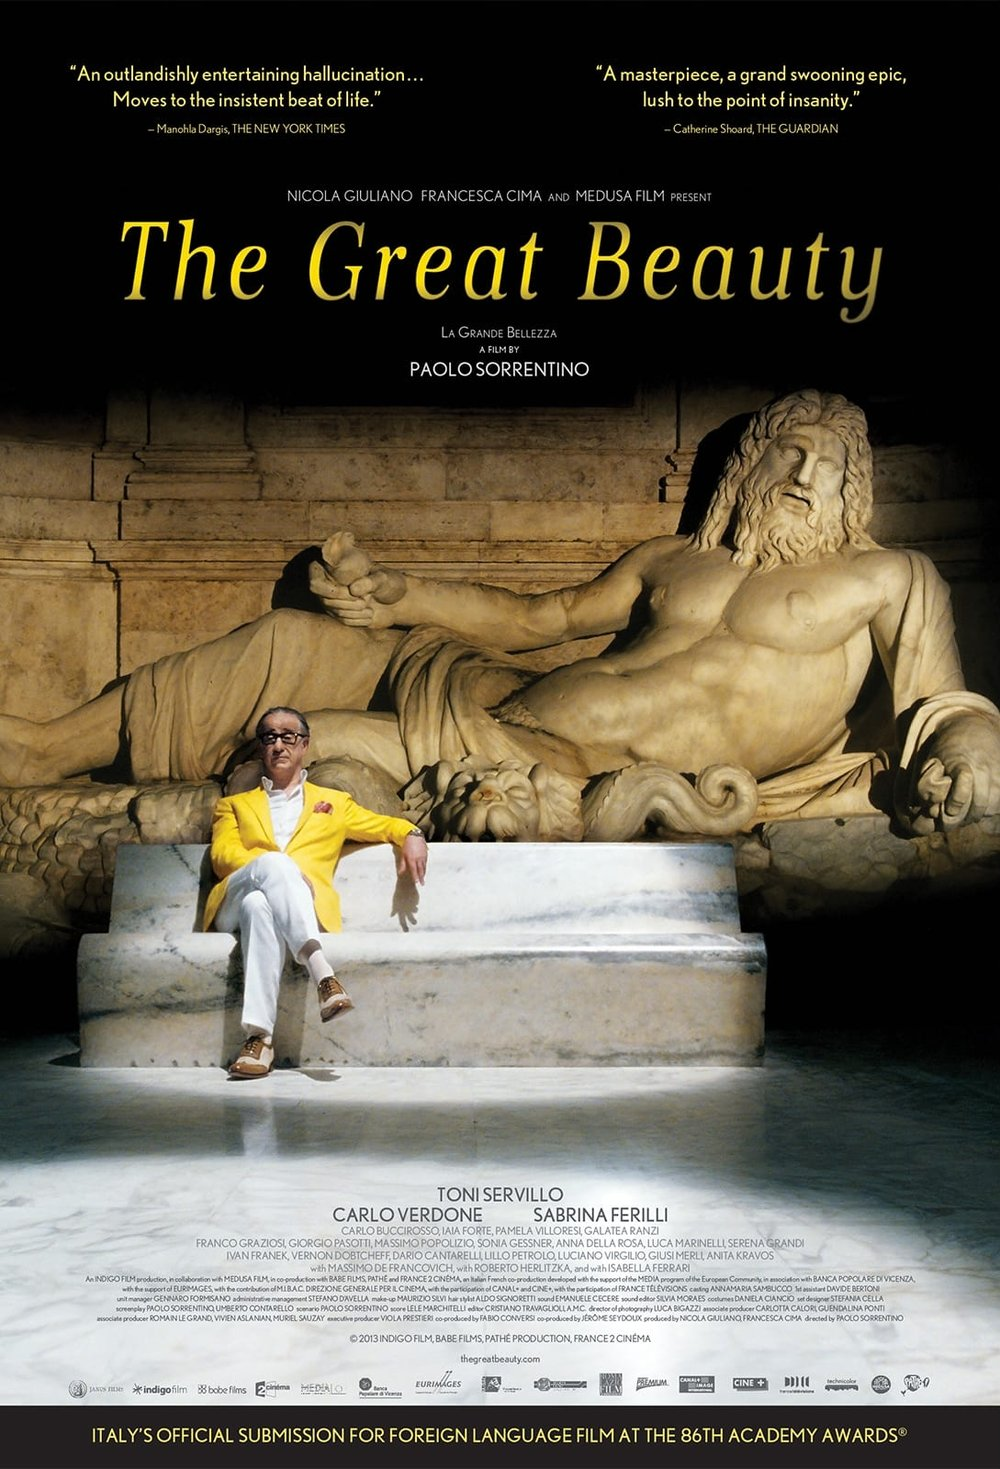 The Great Beauty (2013) - Directed by: Paolo SorrentinoStarring: Toni Servillo, Carlo Verdone, Sabrina FerilliRated: NR (Suggested R for Some Sexual Material Including Nudity, Mild Language, and Drug References)Running Time: 2 h 21 mTMM Score: 4.5 stars out of 5STRENGTHS: Writing, Directing, Cinematography, ActingWEAKNESSES: Pacing, Pretentiousness(?)